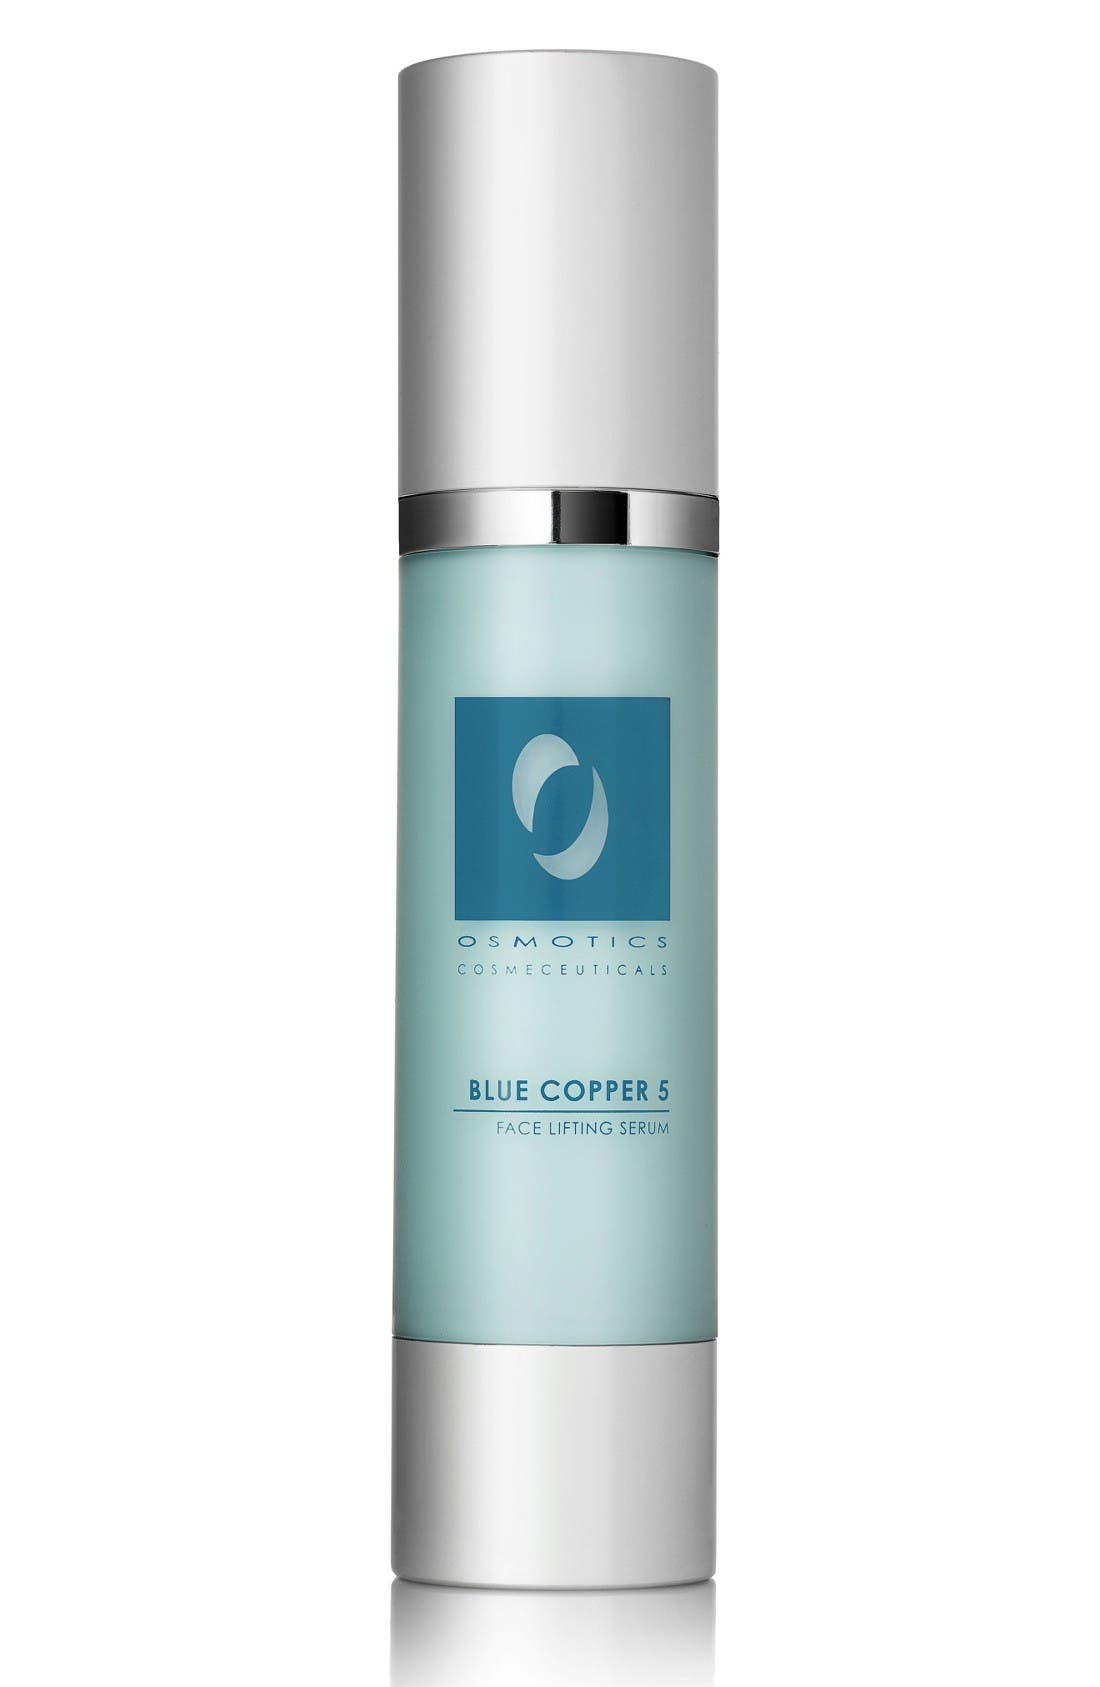 OSMOTICS COSMECEUTICALS Blue Copper 5 Face Lifting Serum